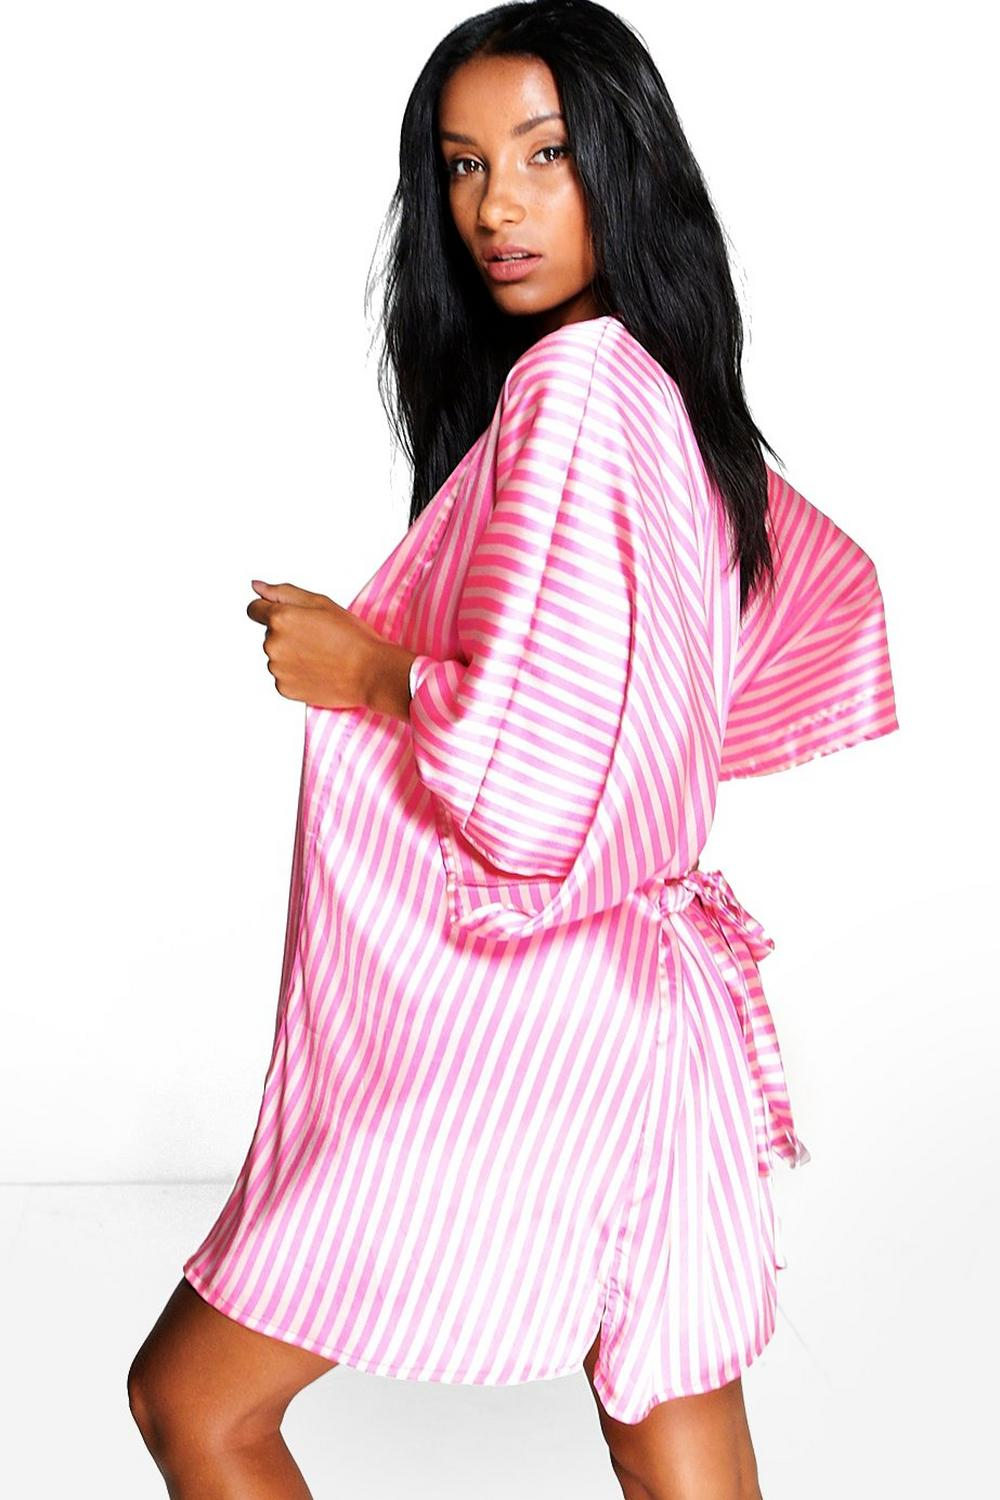 Robe Stripe Candy Robe Stripe Robe Candy pink Stripe Candy pink pink 8gSx0qE